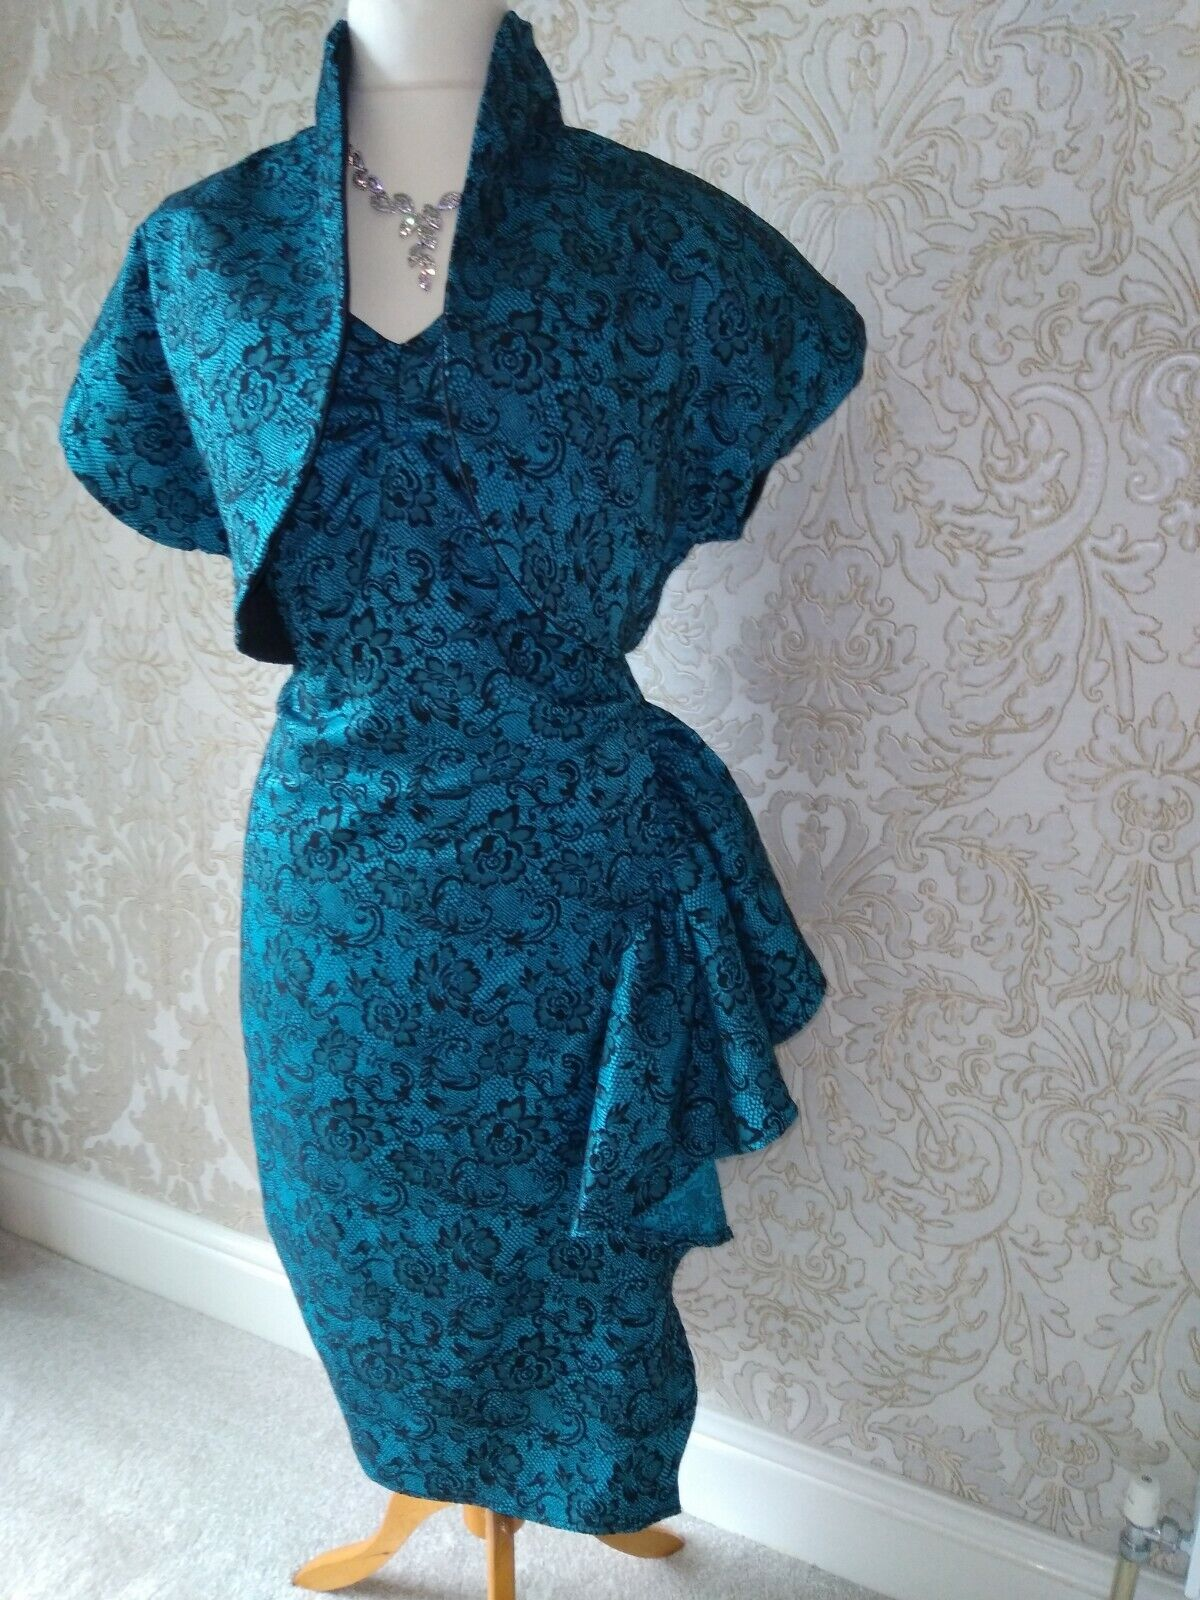 mother of the bride dress and matching bolero jacket new16 teal stretch brocade